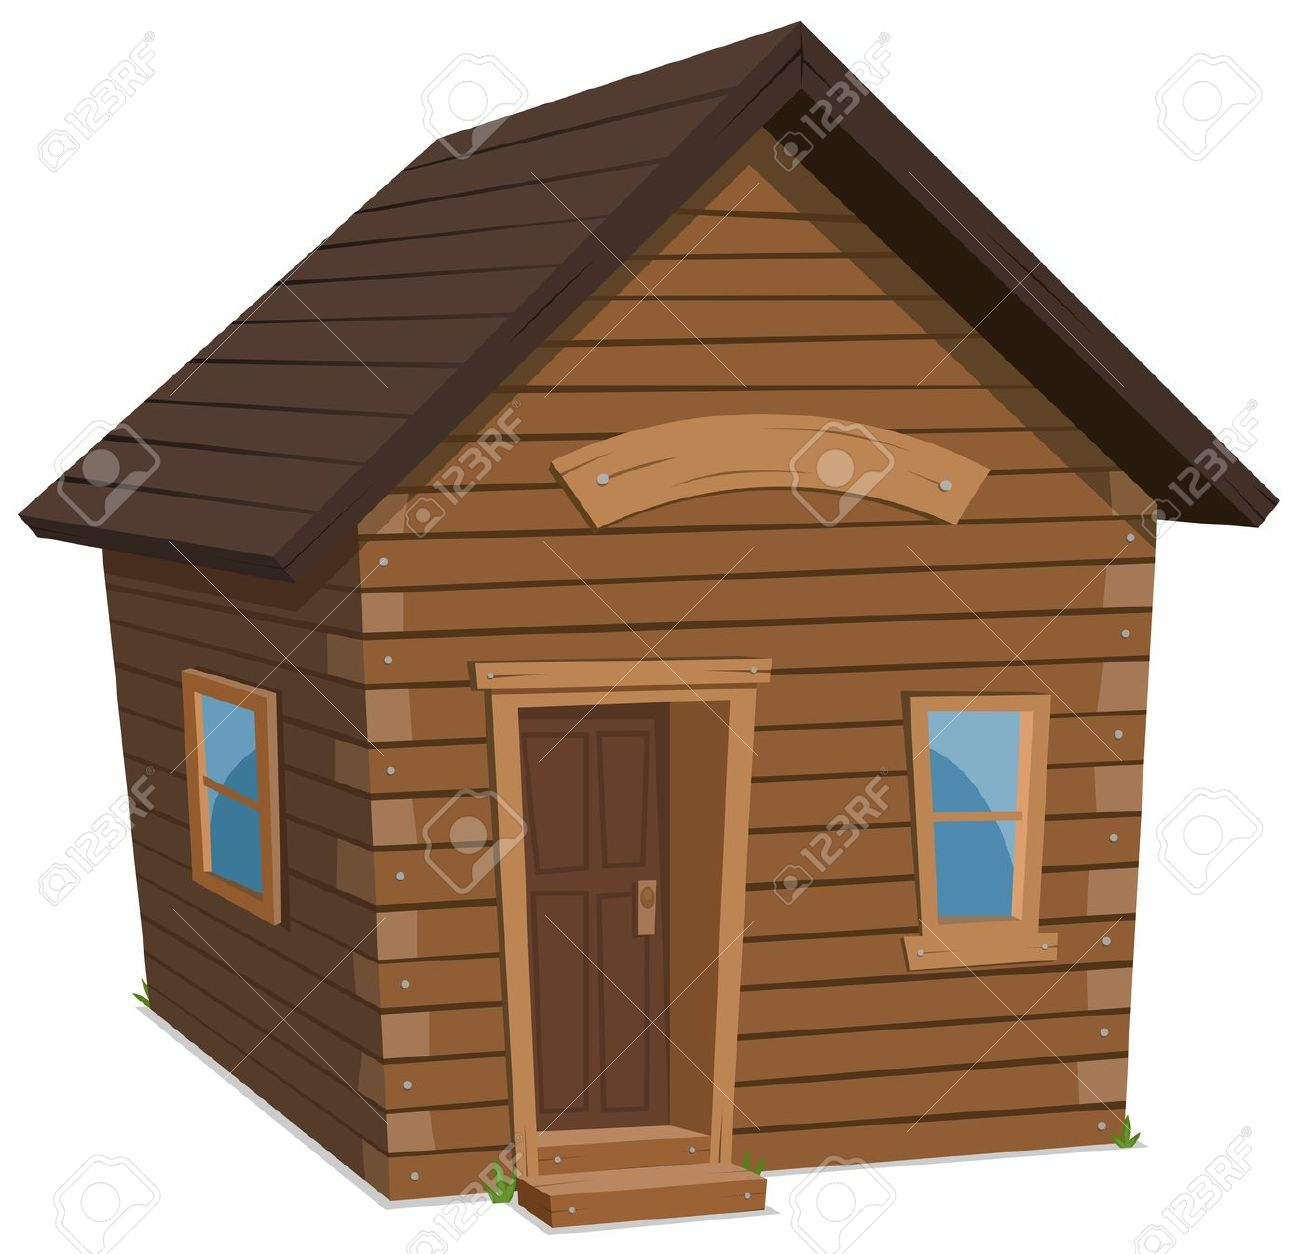 Cabin clipart hut. Shack simple pencil and